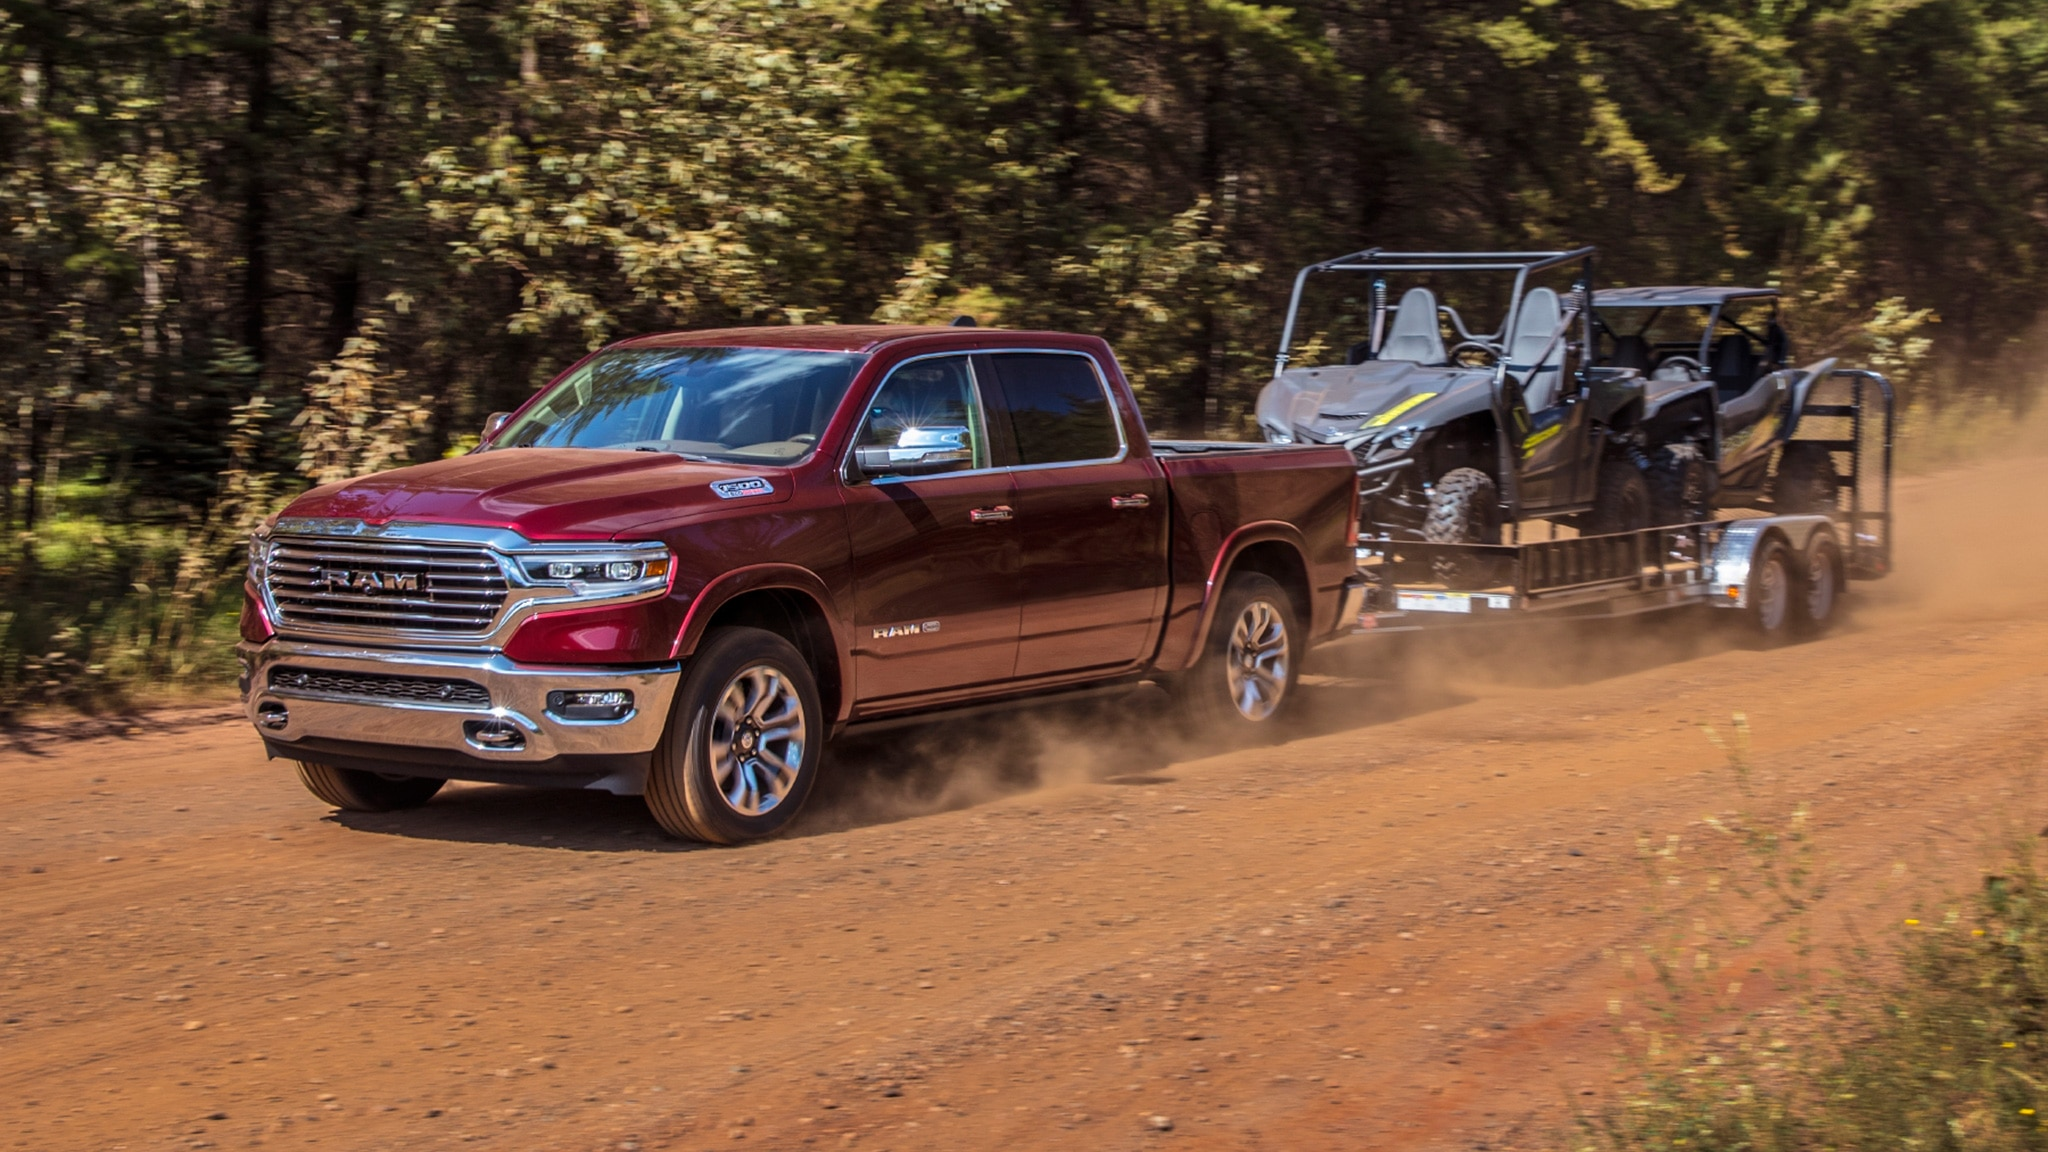 2020 Ram 1500 EcoDiesel First Drive Review: Easy to Love